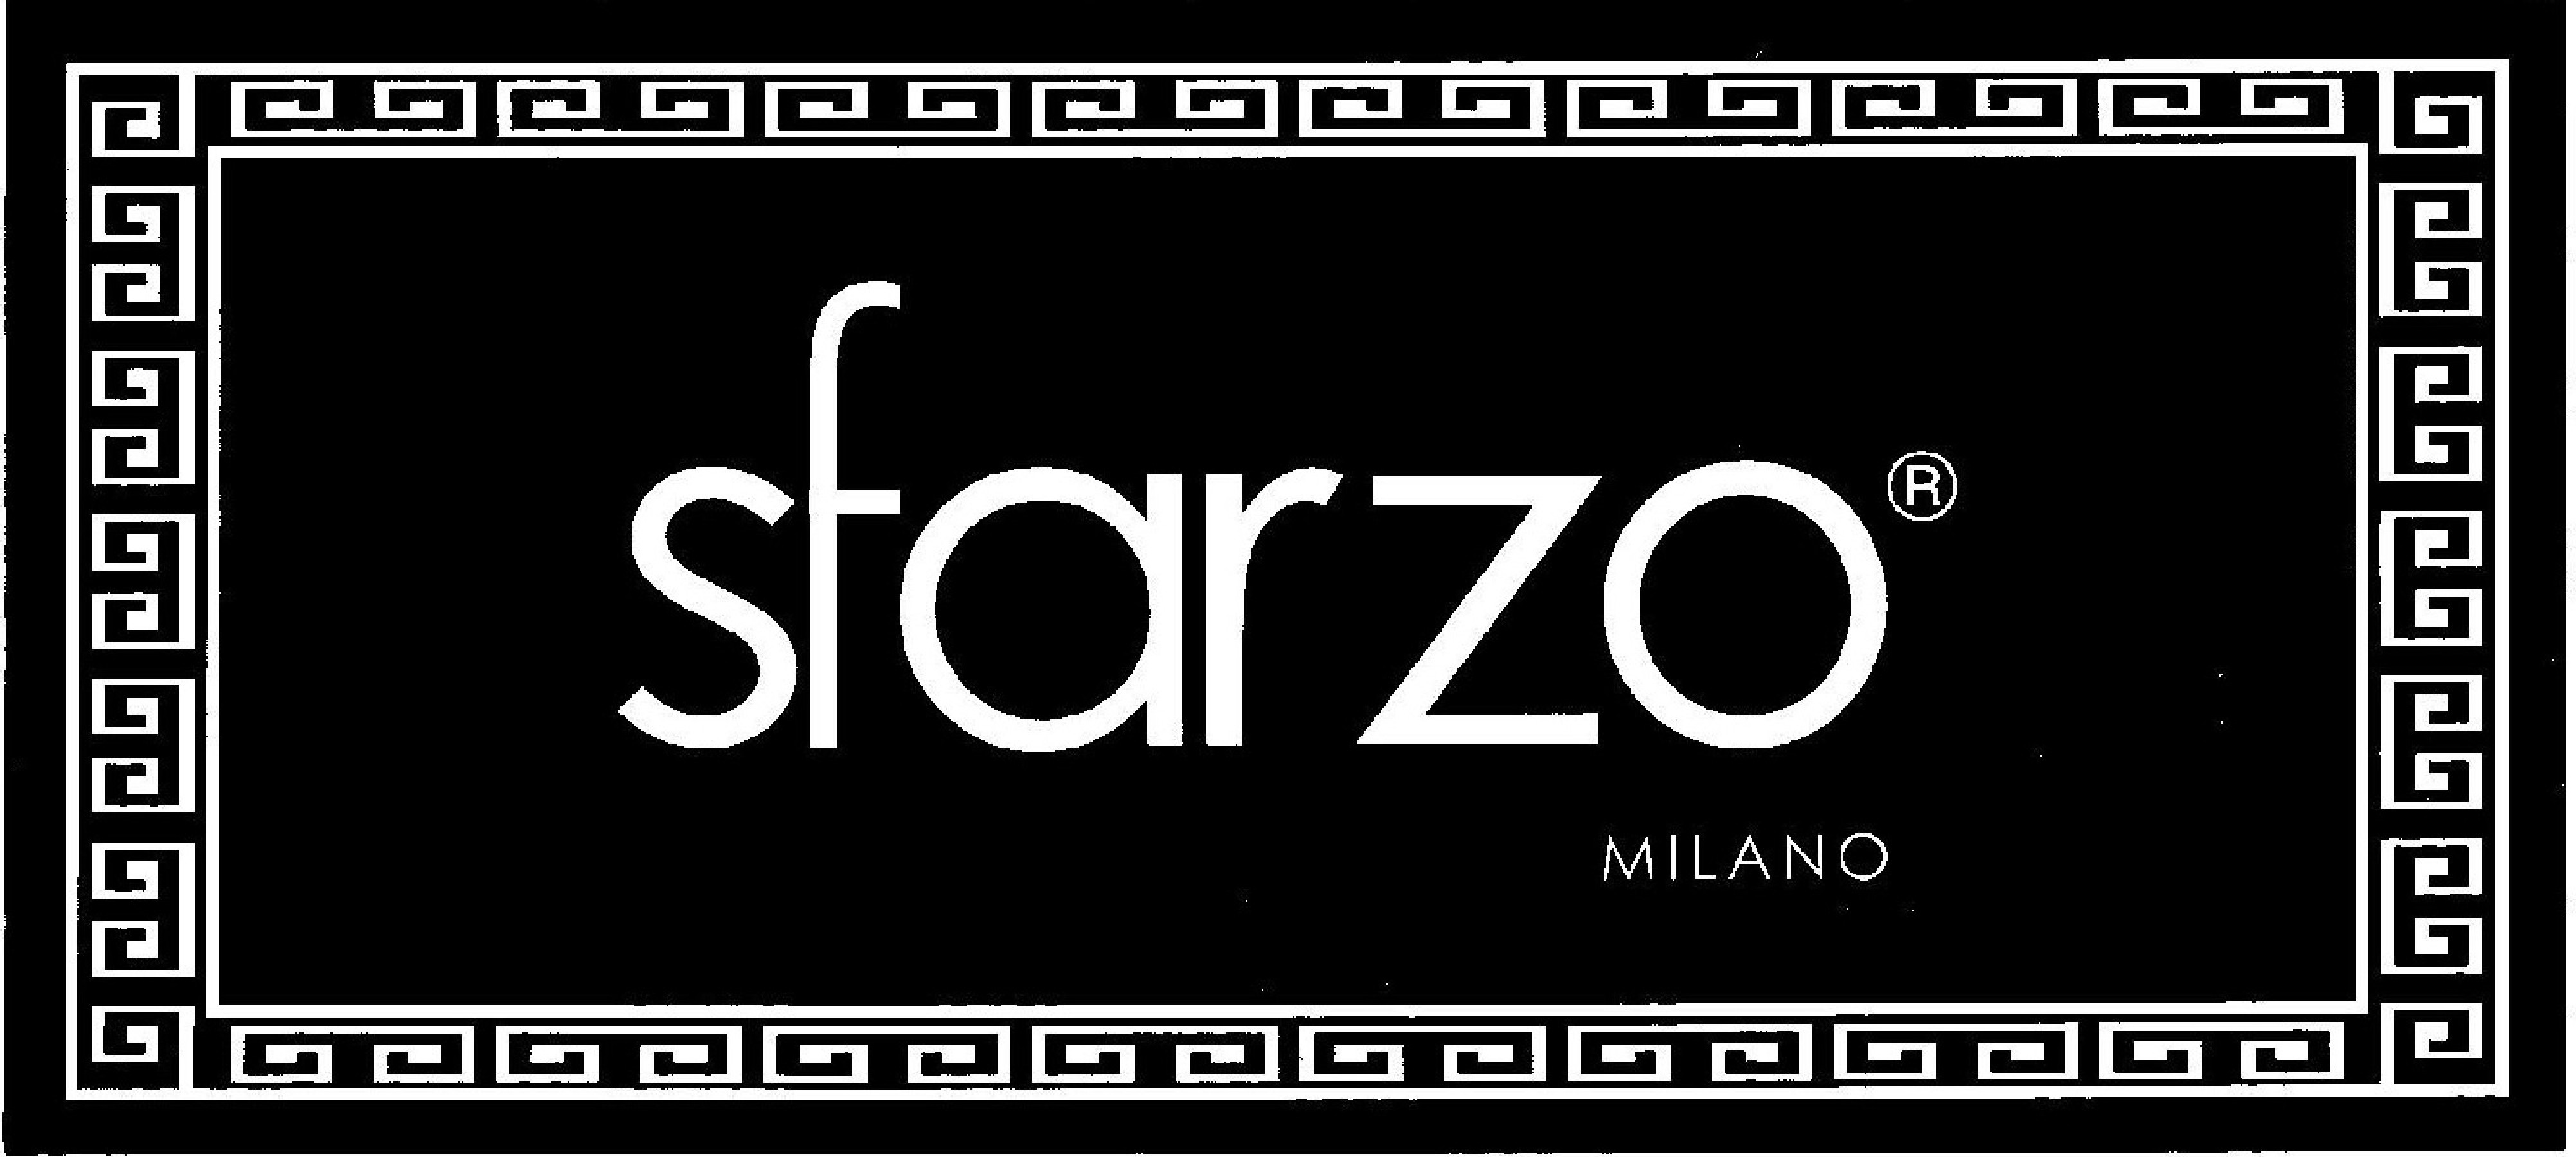 springsummercollection2019-                          sfarzo